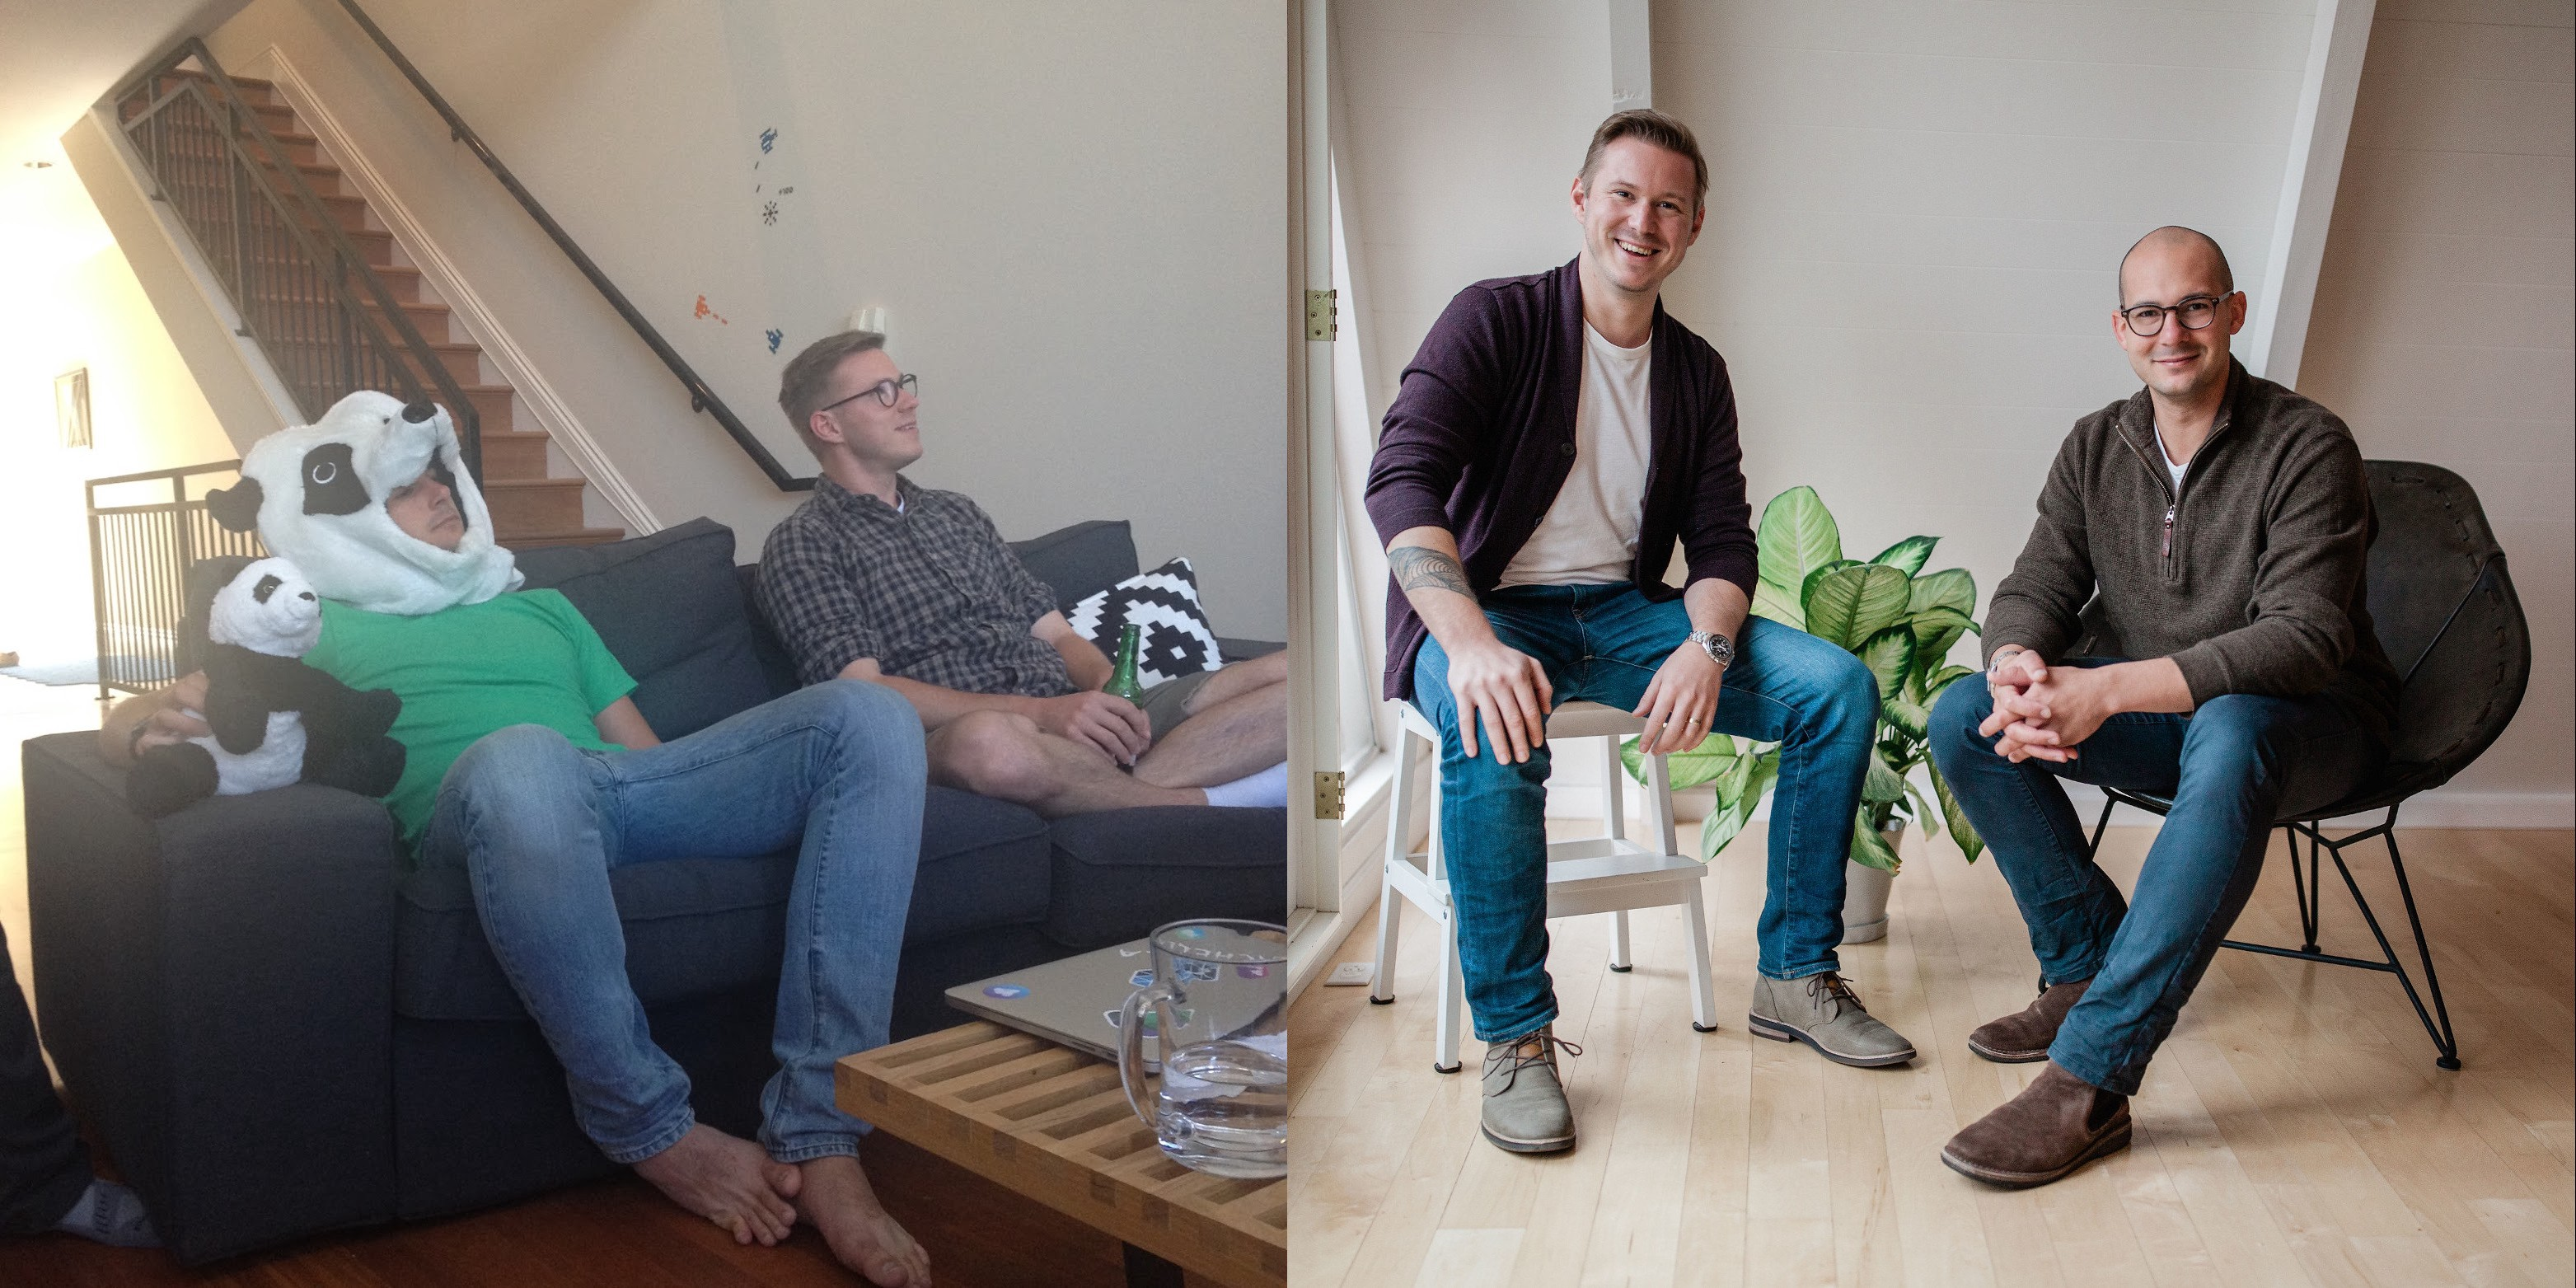 Myself pictured with co-founder Niklas Nielsen circa 2014 (left) and in early 2020 (right)